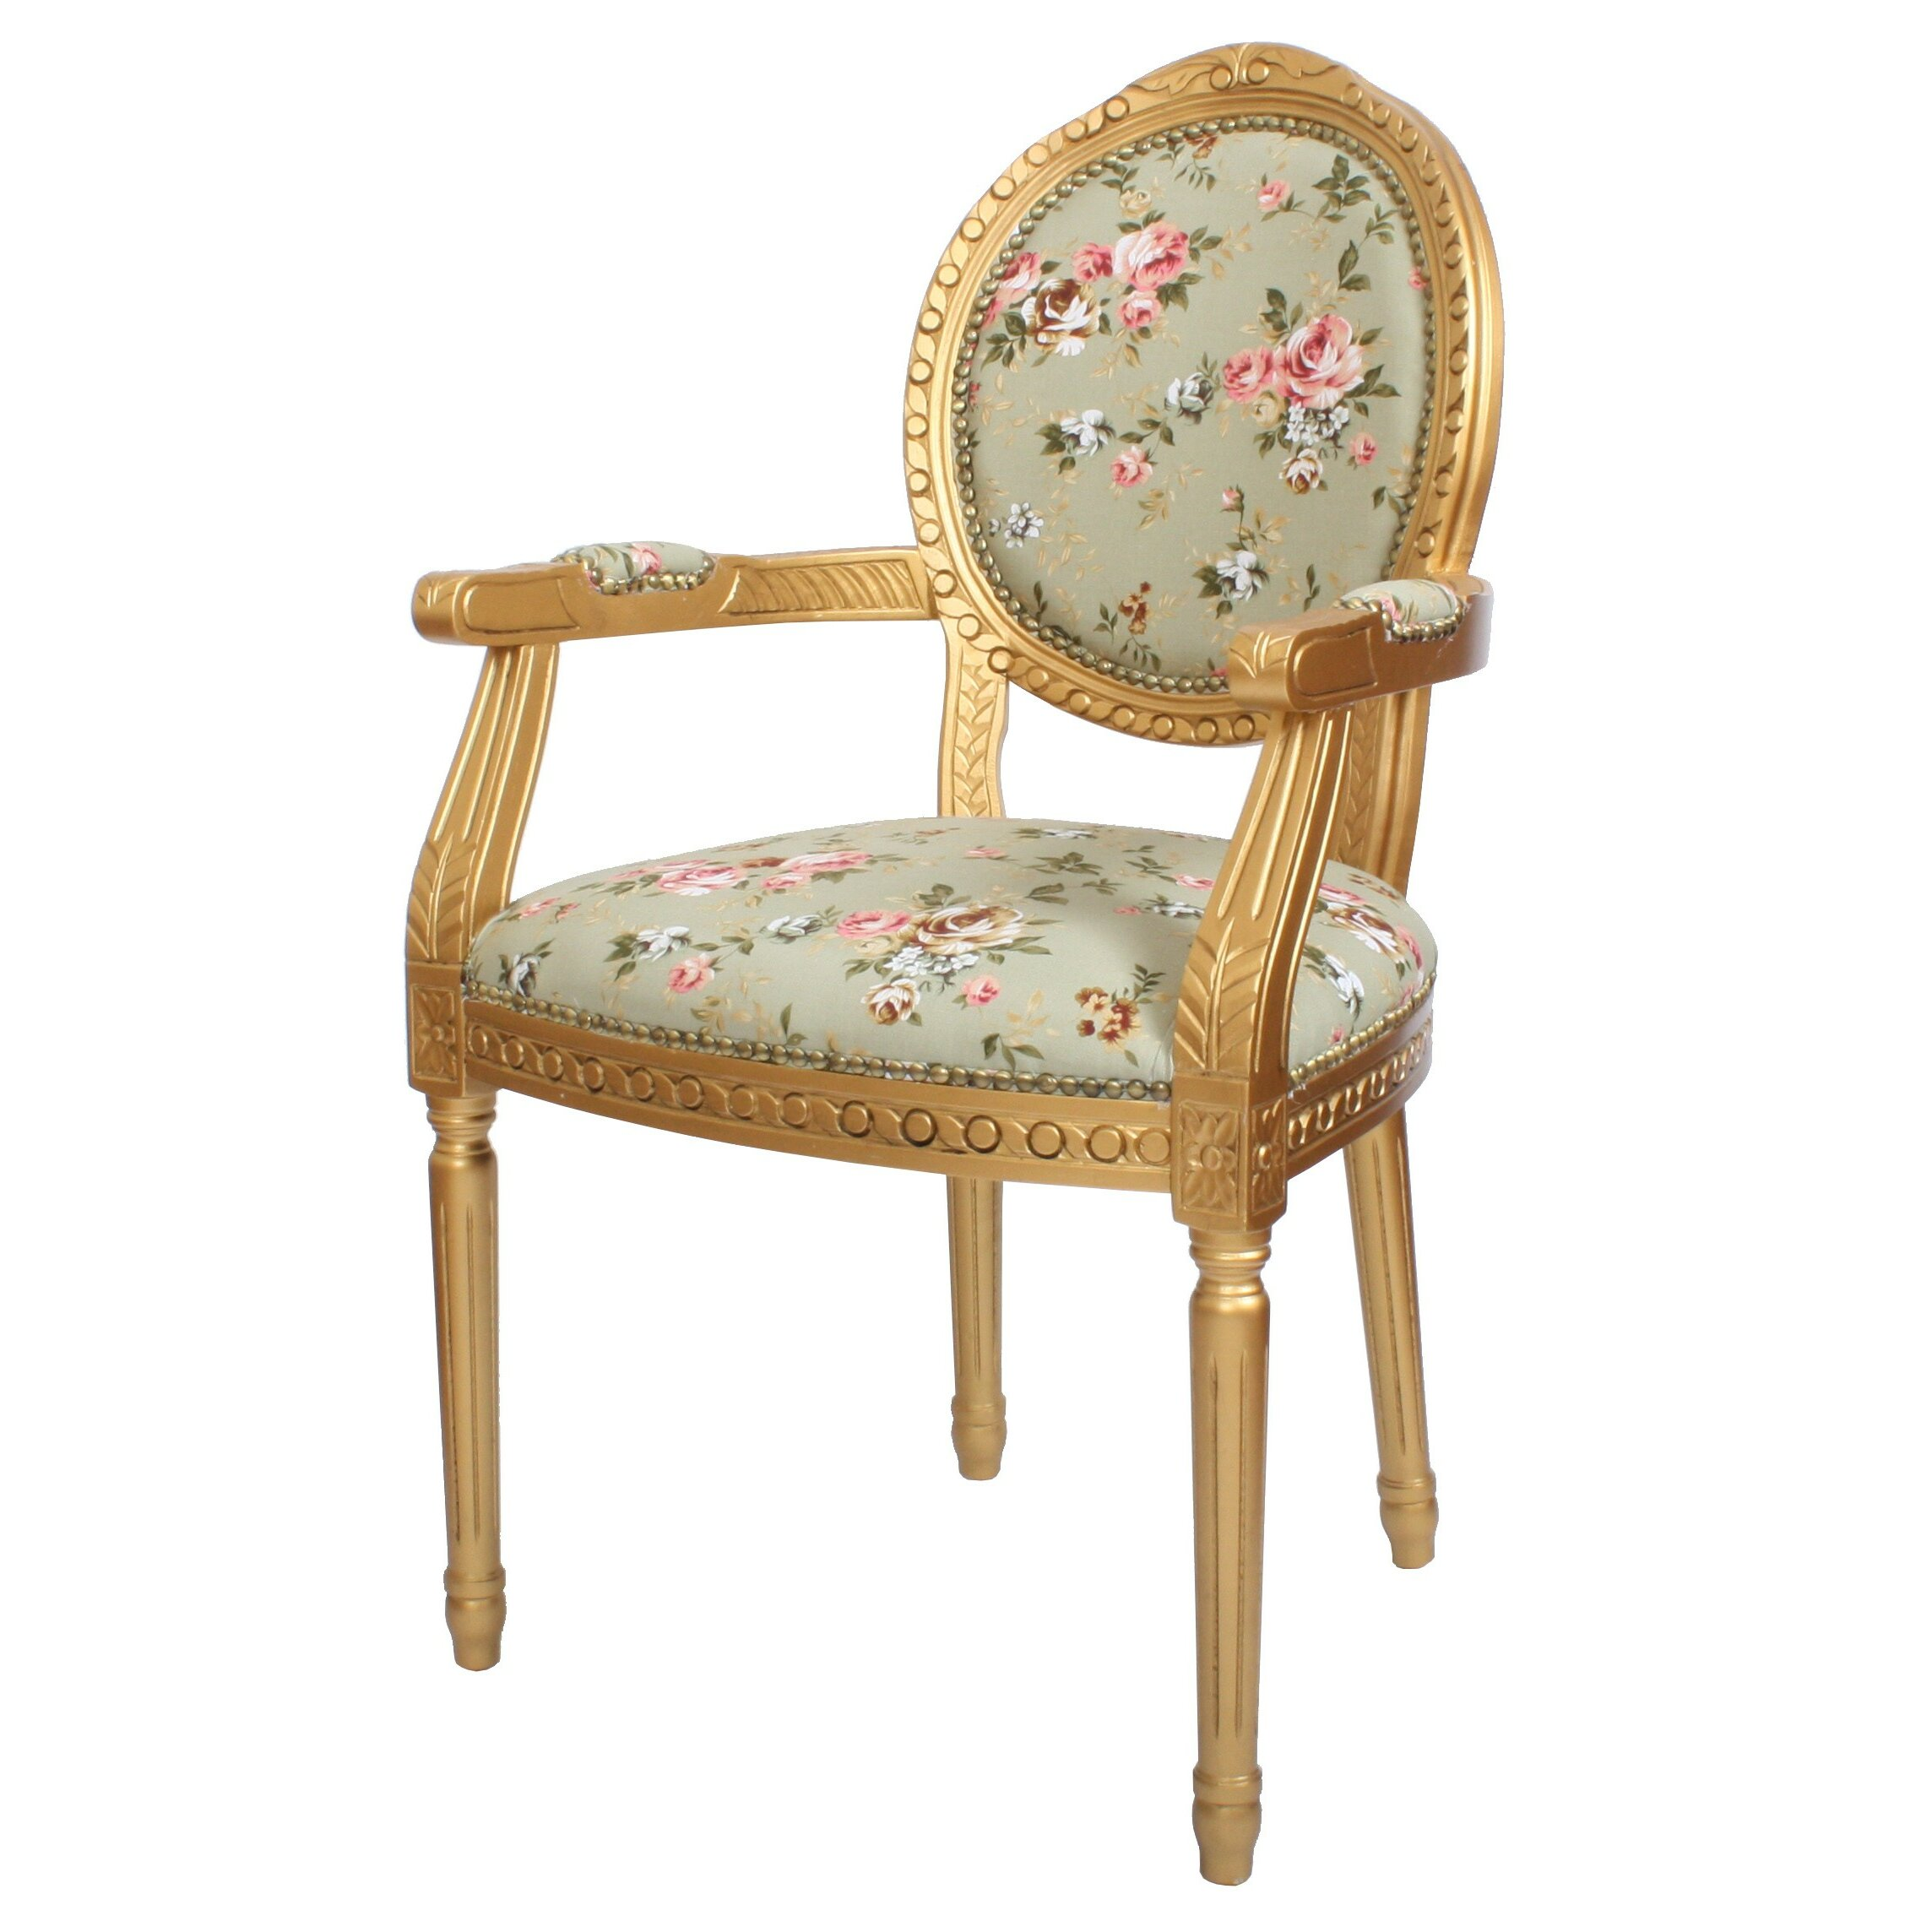 Derry S Louis Floral Upholstered Dining Chair Amp Reviews